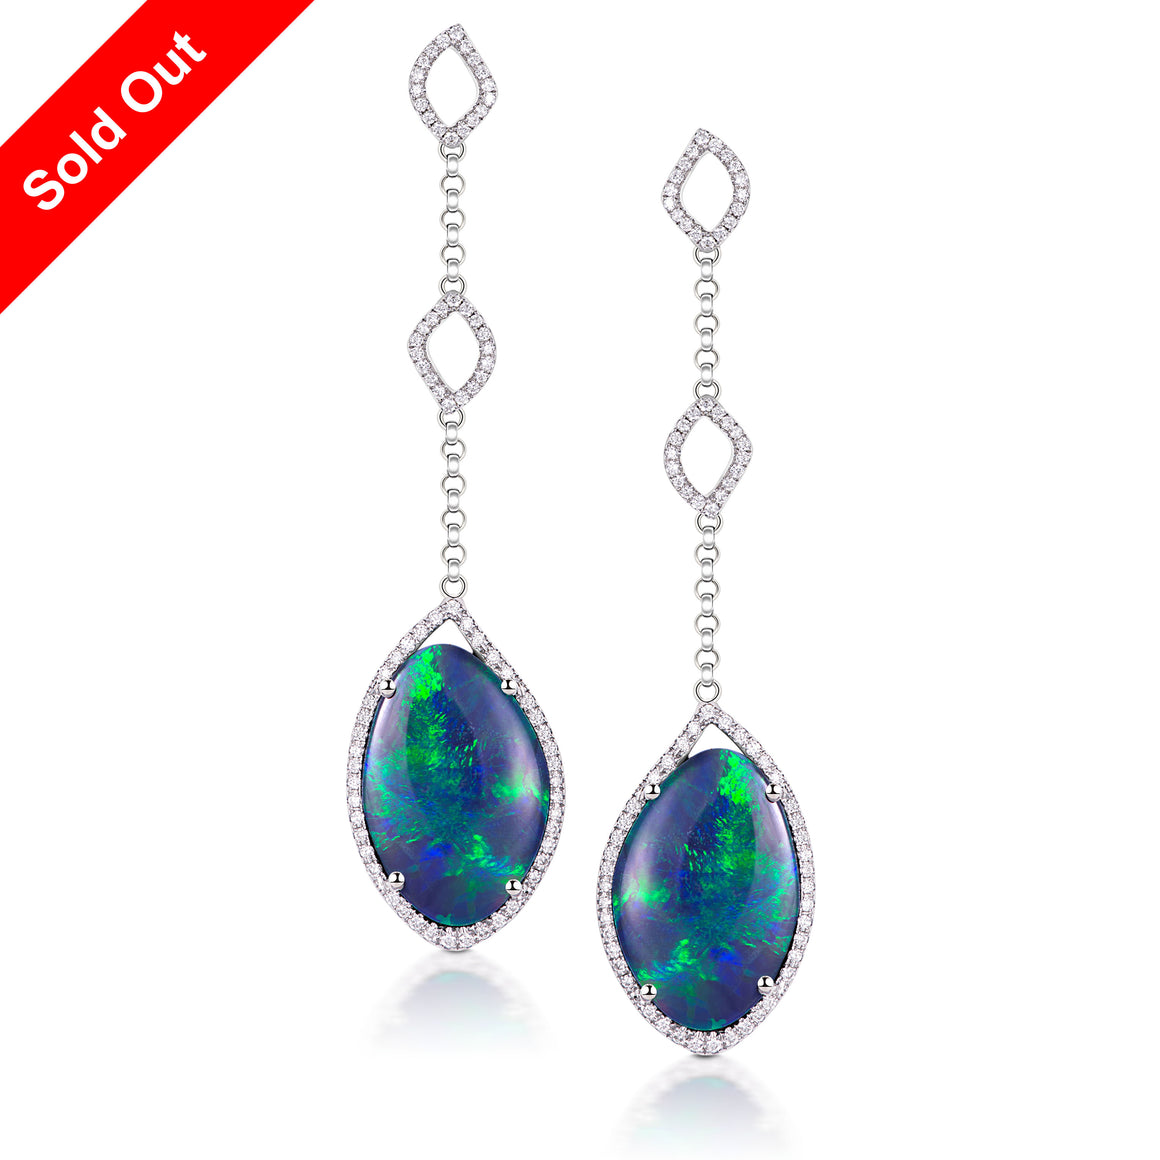 18K White Gold & Diamond Australian Black Opal Earrings